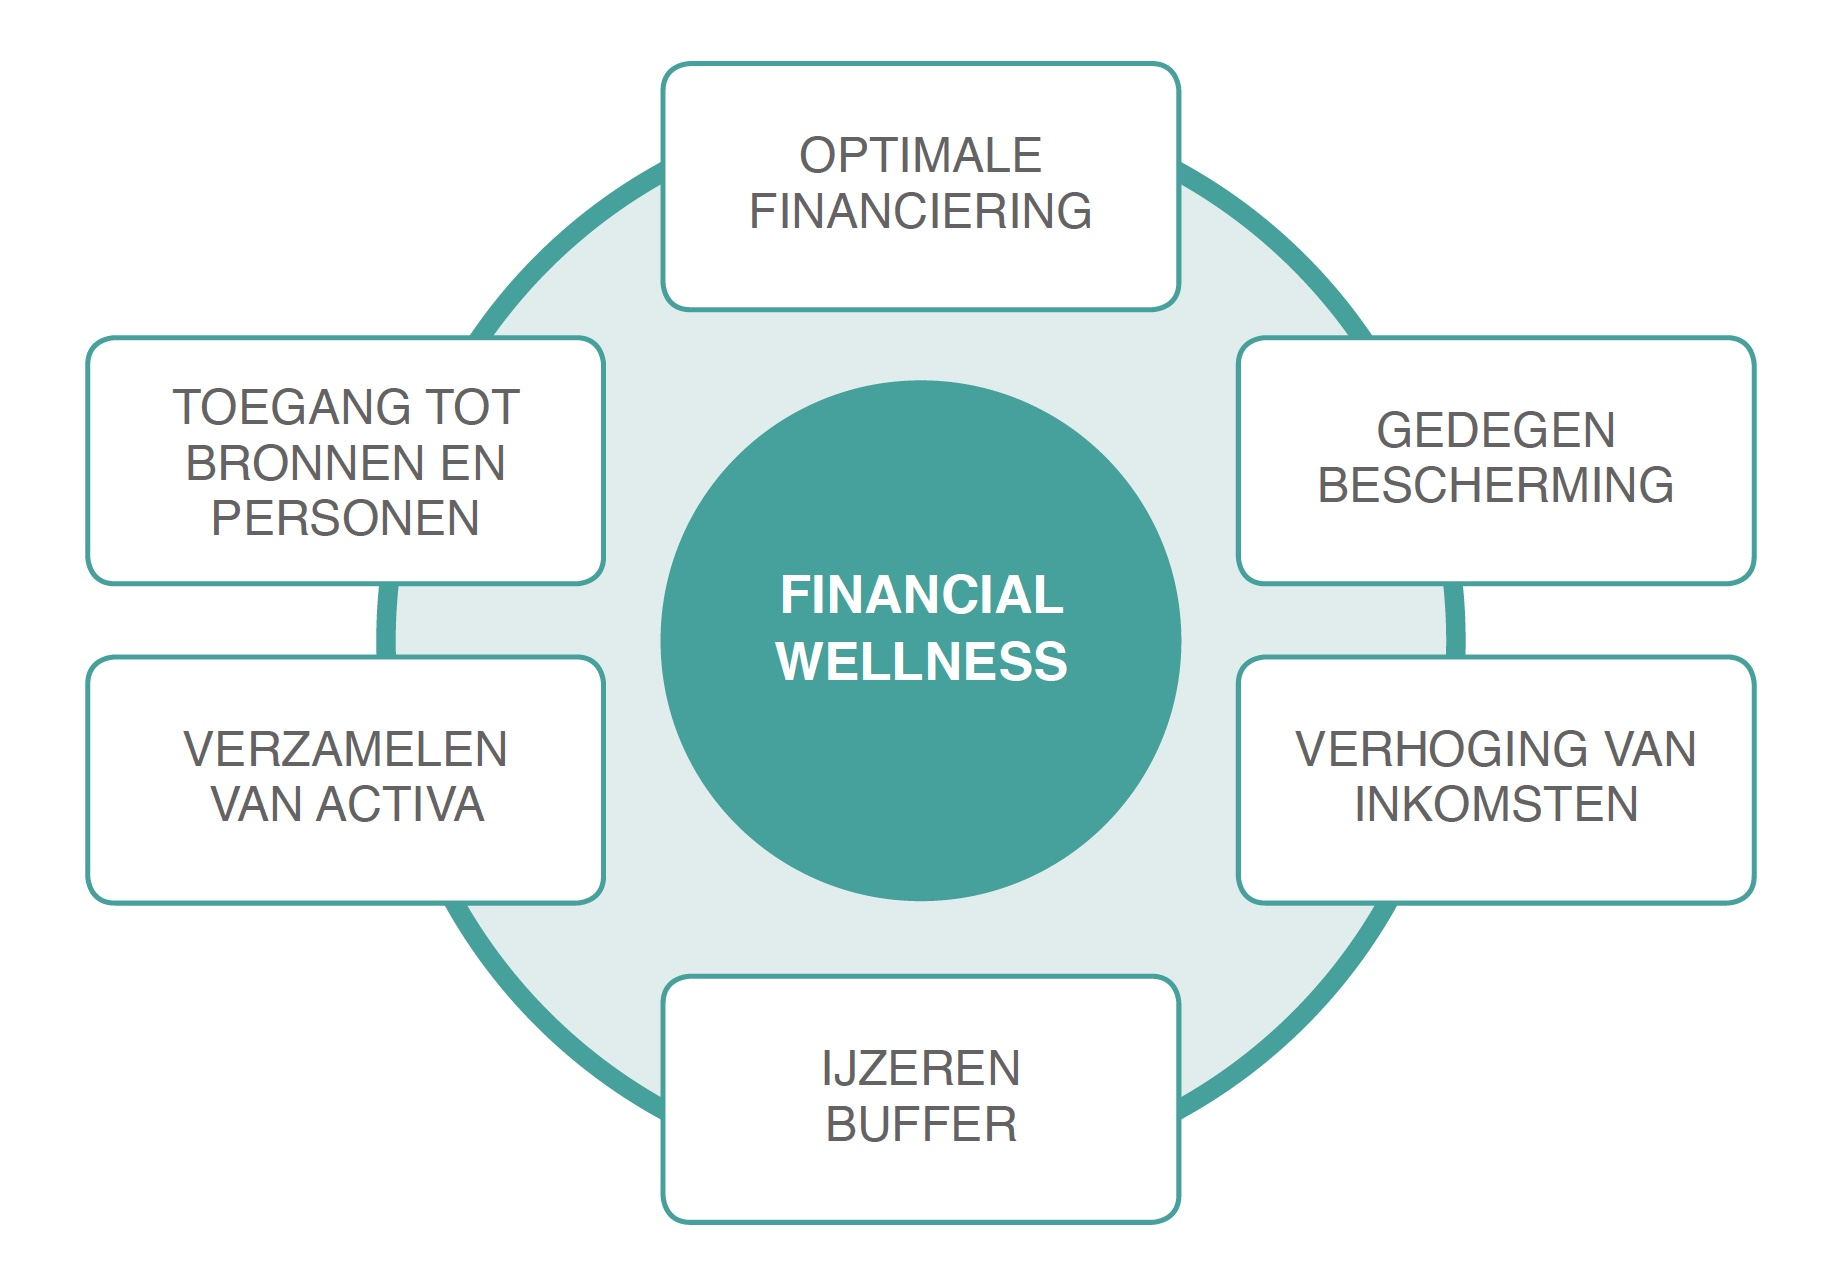 https://usercontent.one/wp/www.financialwellbeingacademy.be/wp-content/uploads/2019/02/Financial-Wellness-Wat-brengt-het-op-aan-voordelen-.jpeg